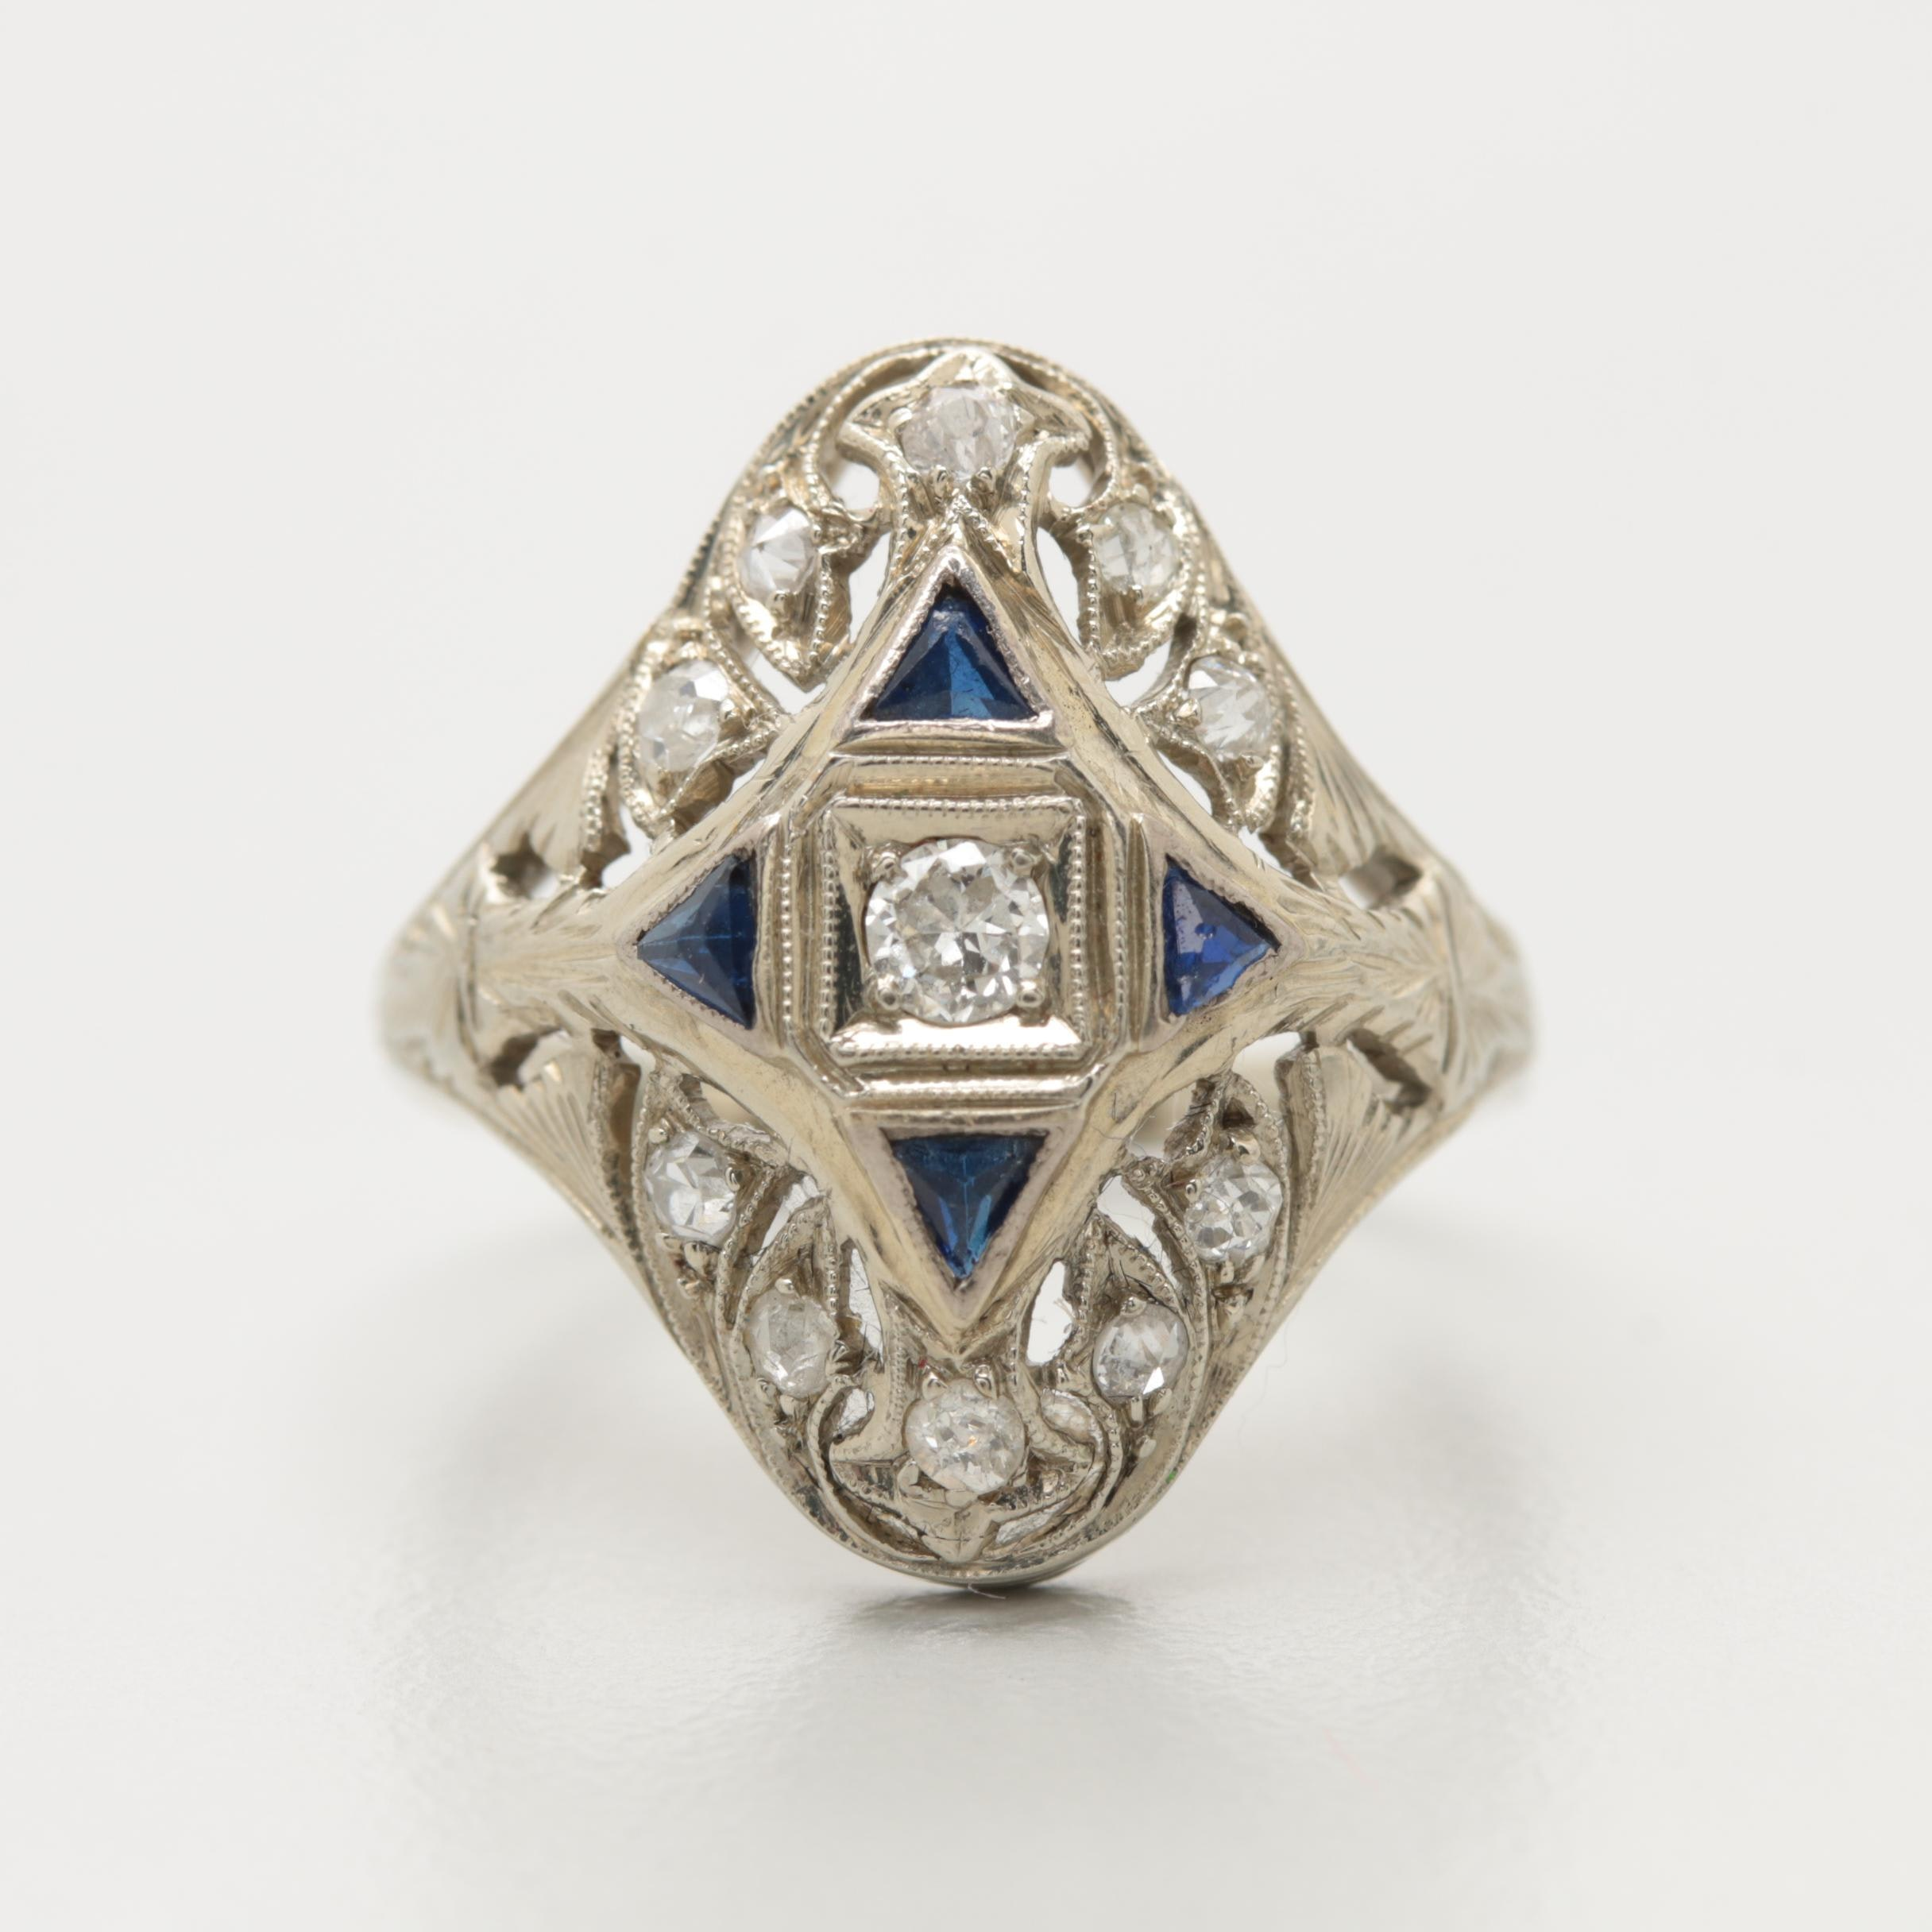 Art Deco 18K White Gold Diamond and Synthetic Sapphire Ring